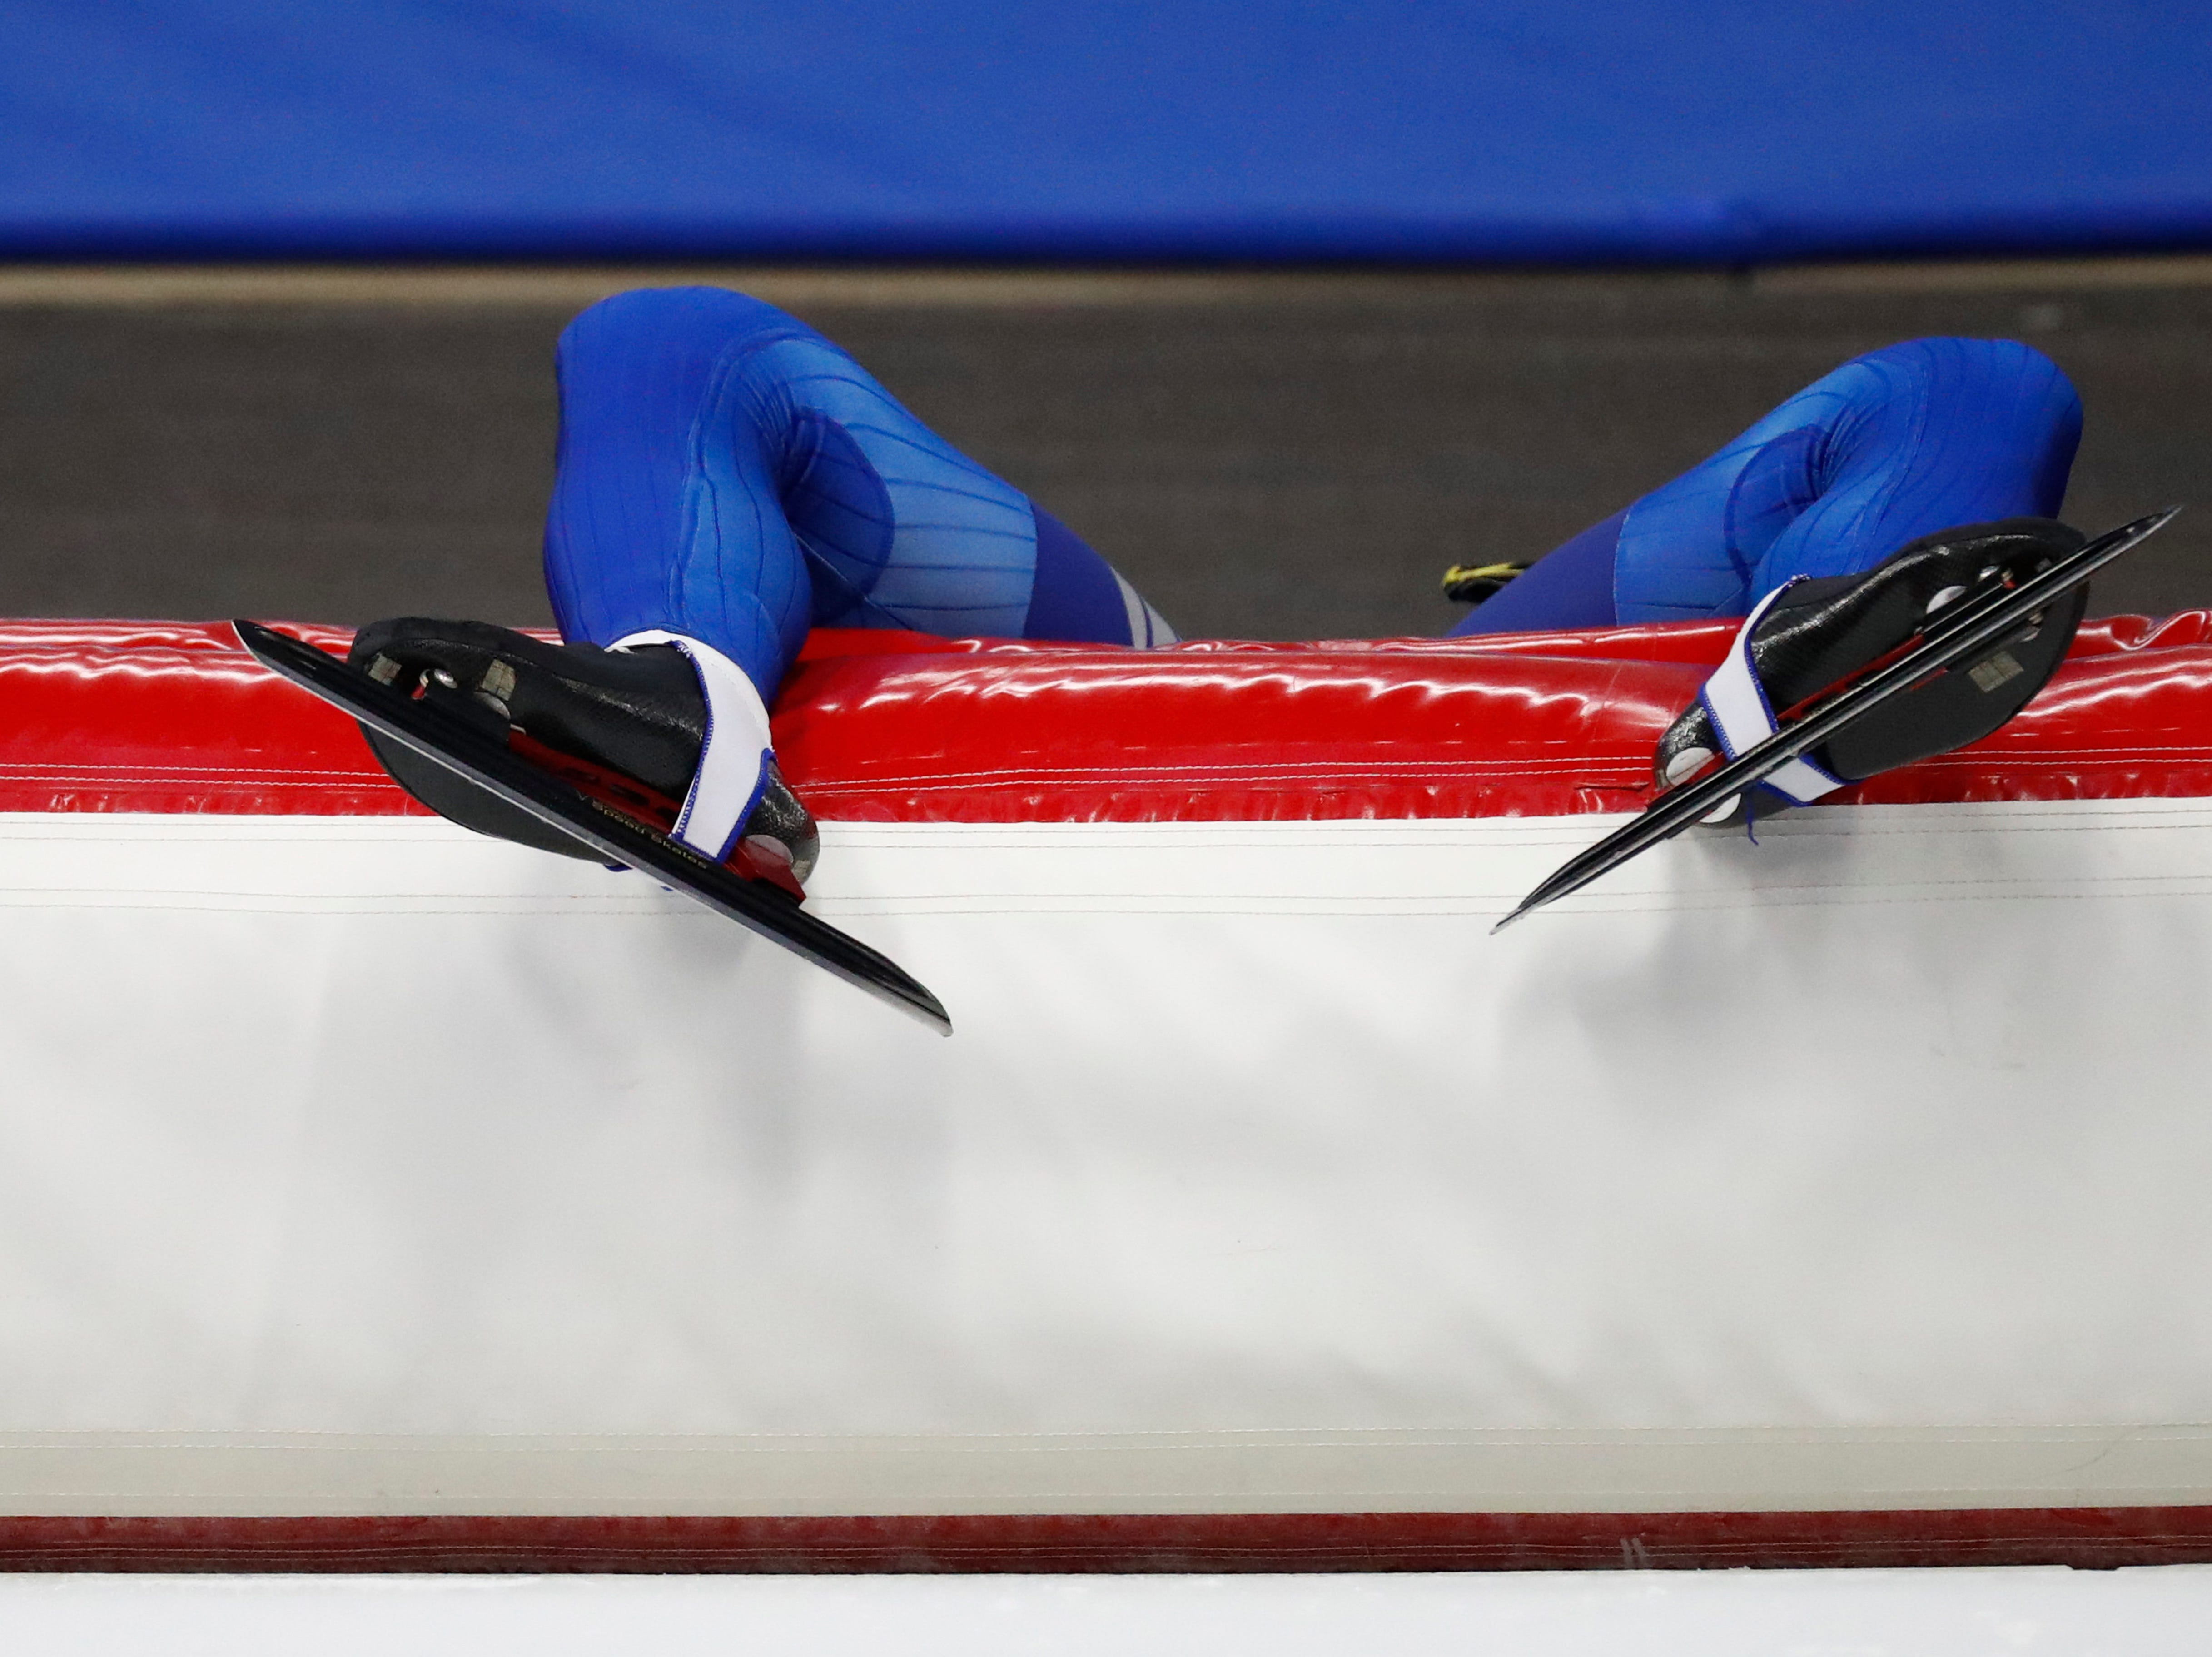 Bronze medallist Chung Jaewon catches his breath after the men's mass start race at the ISU single distance Speedskating World Championships in Inzell, Germany, Sunday, Feb. 10, 2019.